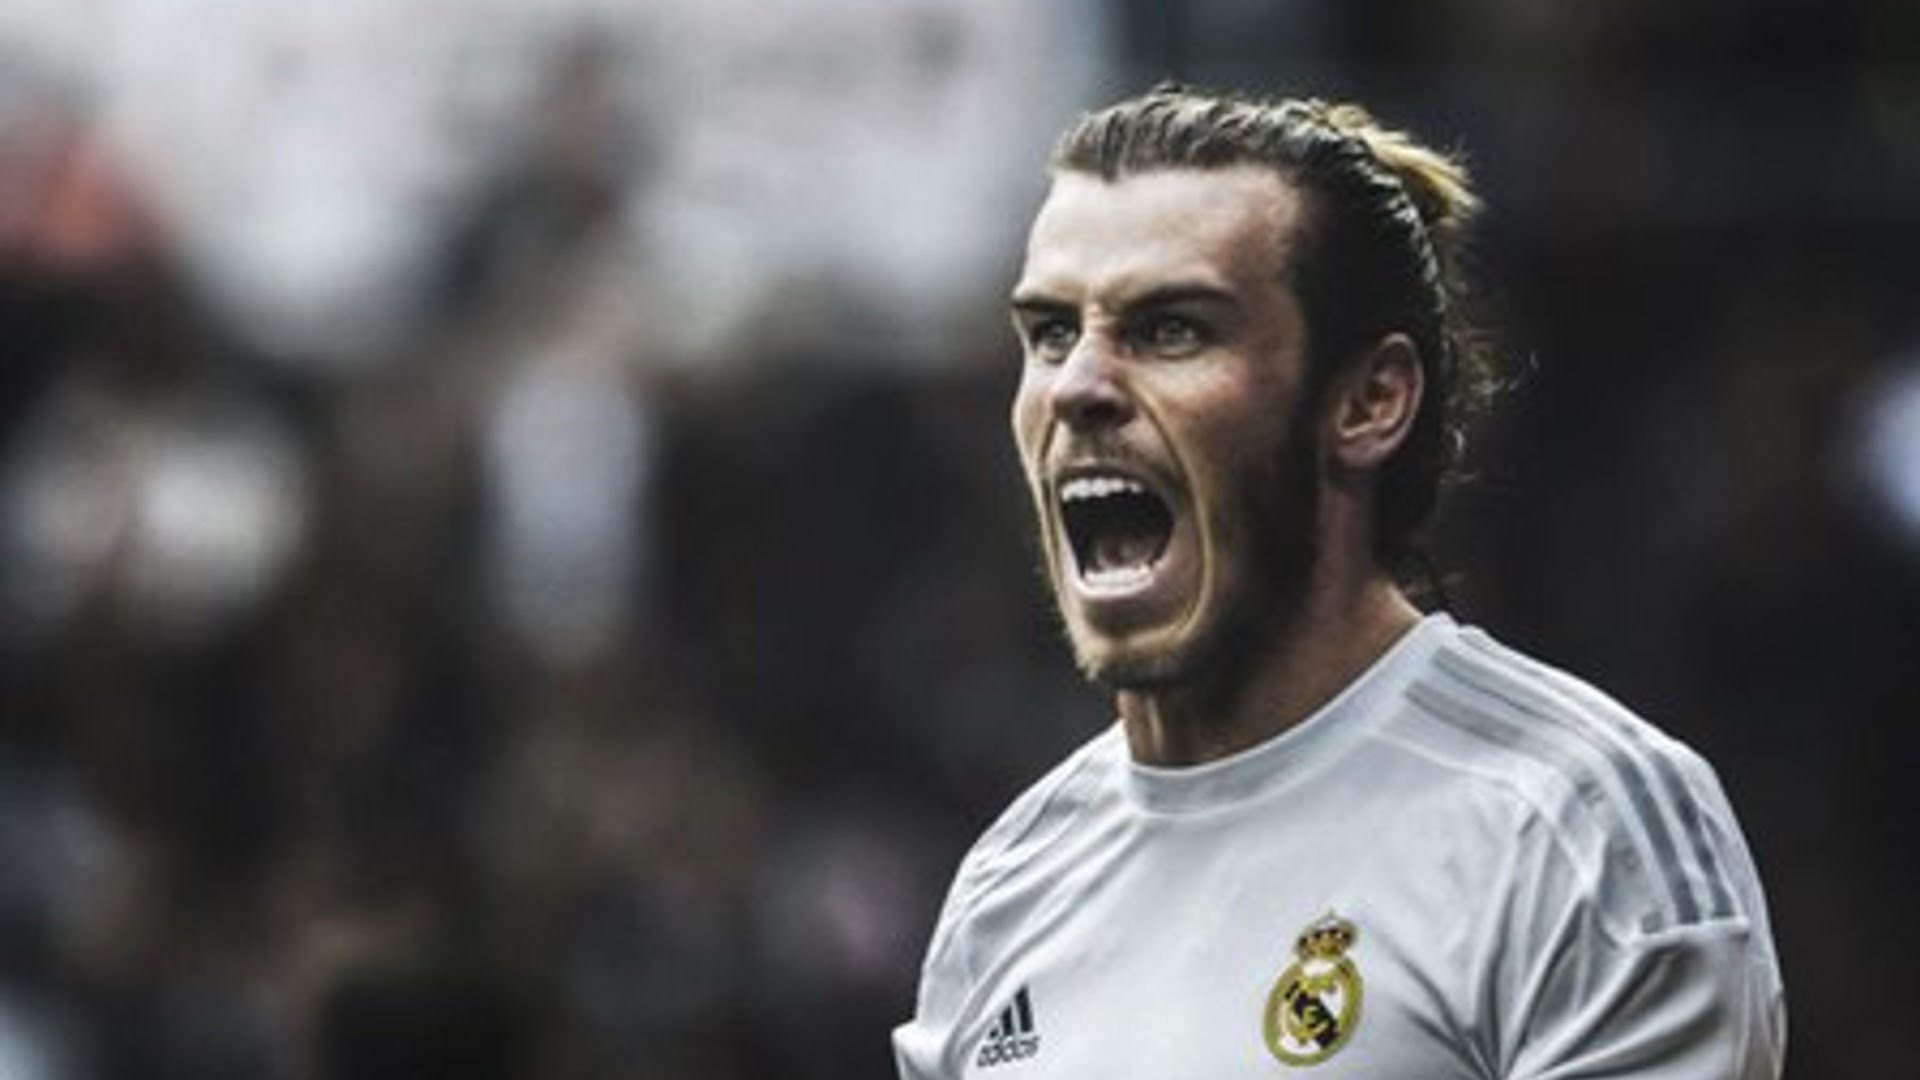 Gareth Bale Backgrounds